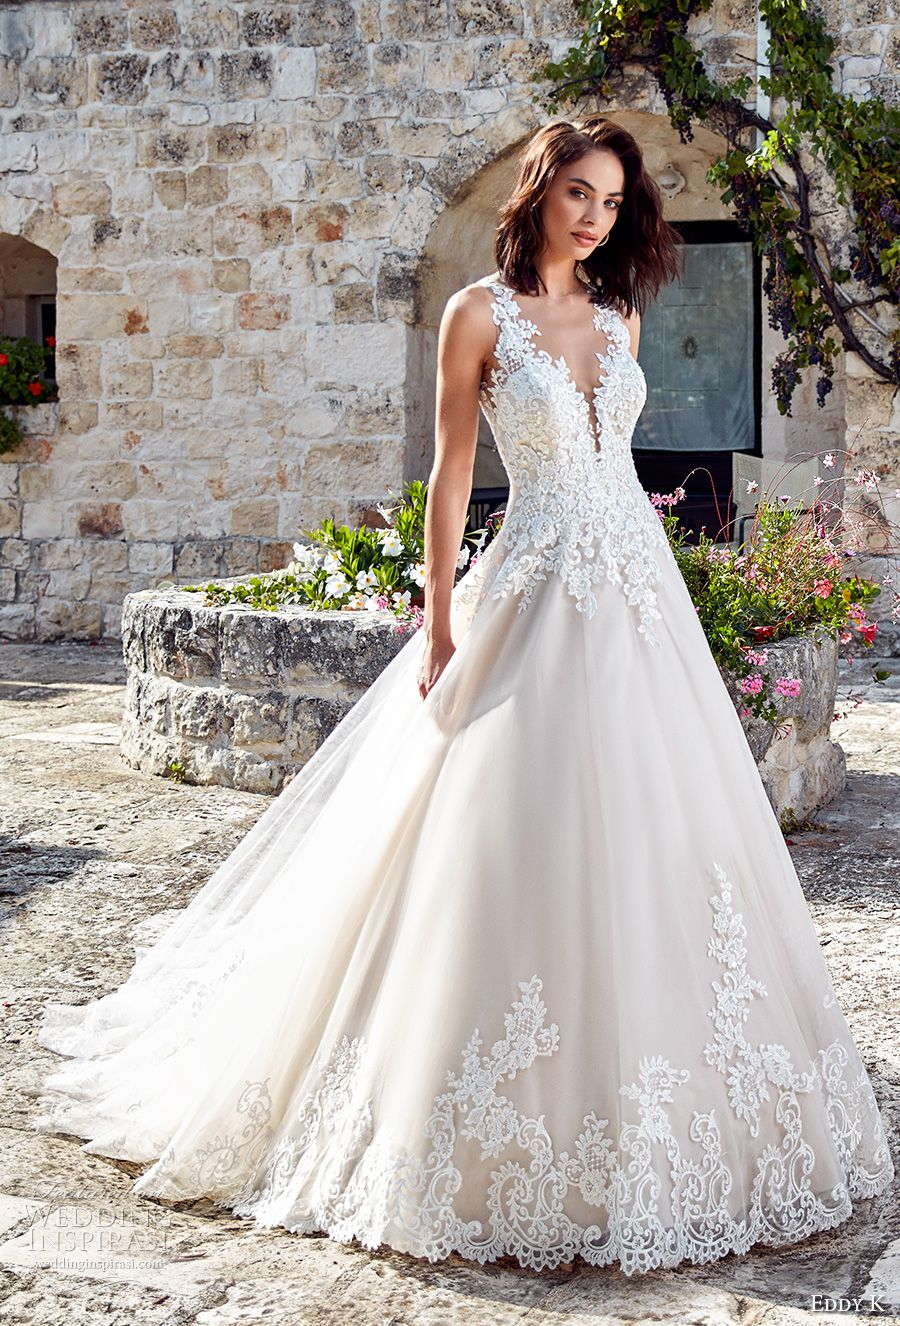 50 Best Models of Princess Wedding Dresses 2018 | Sposa 21 ...